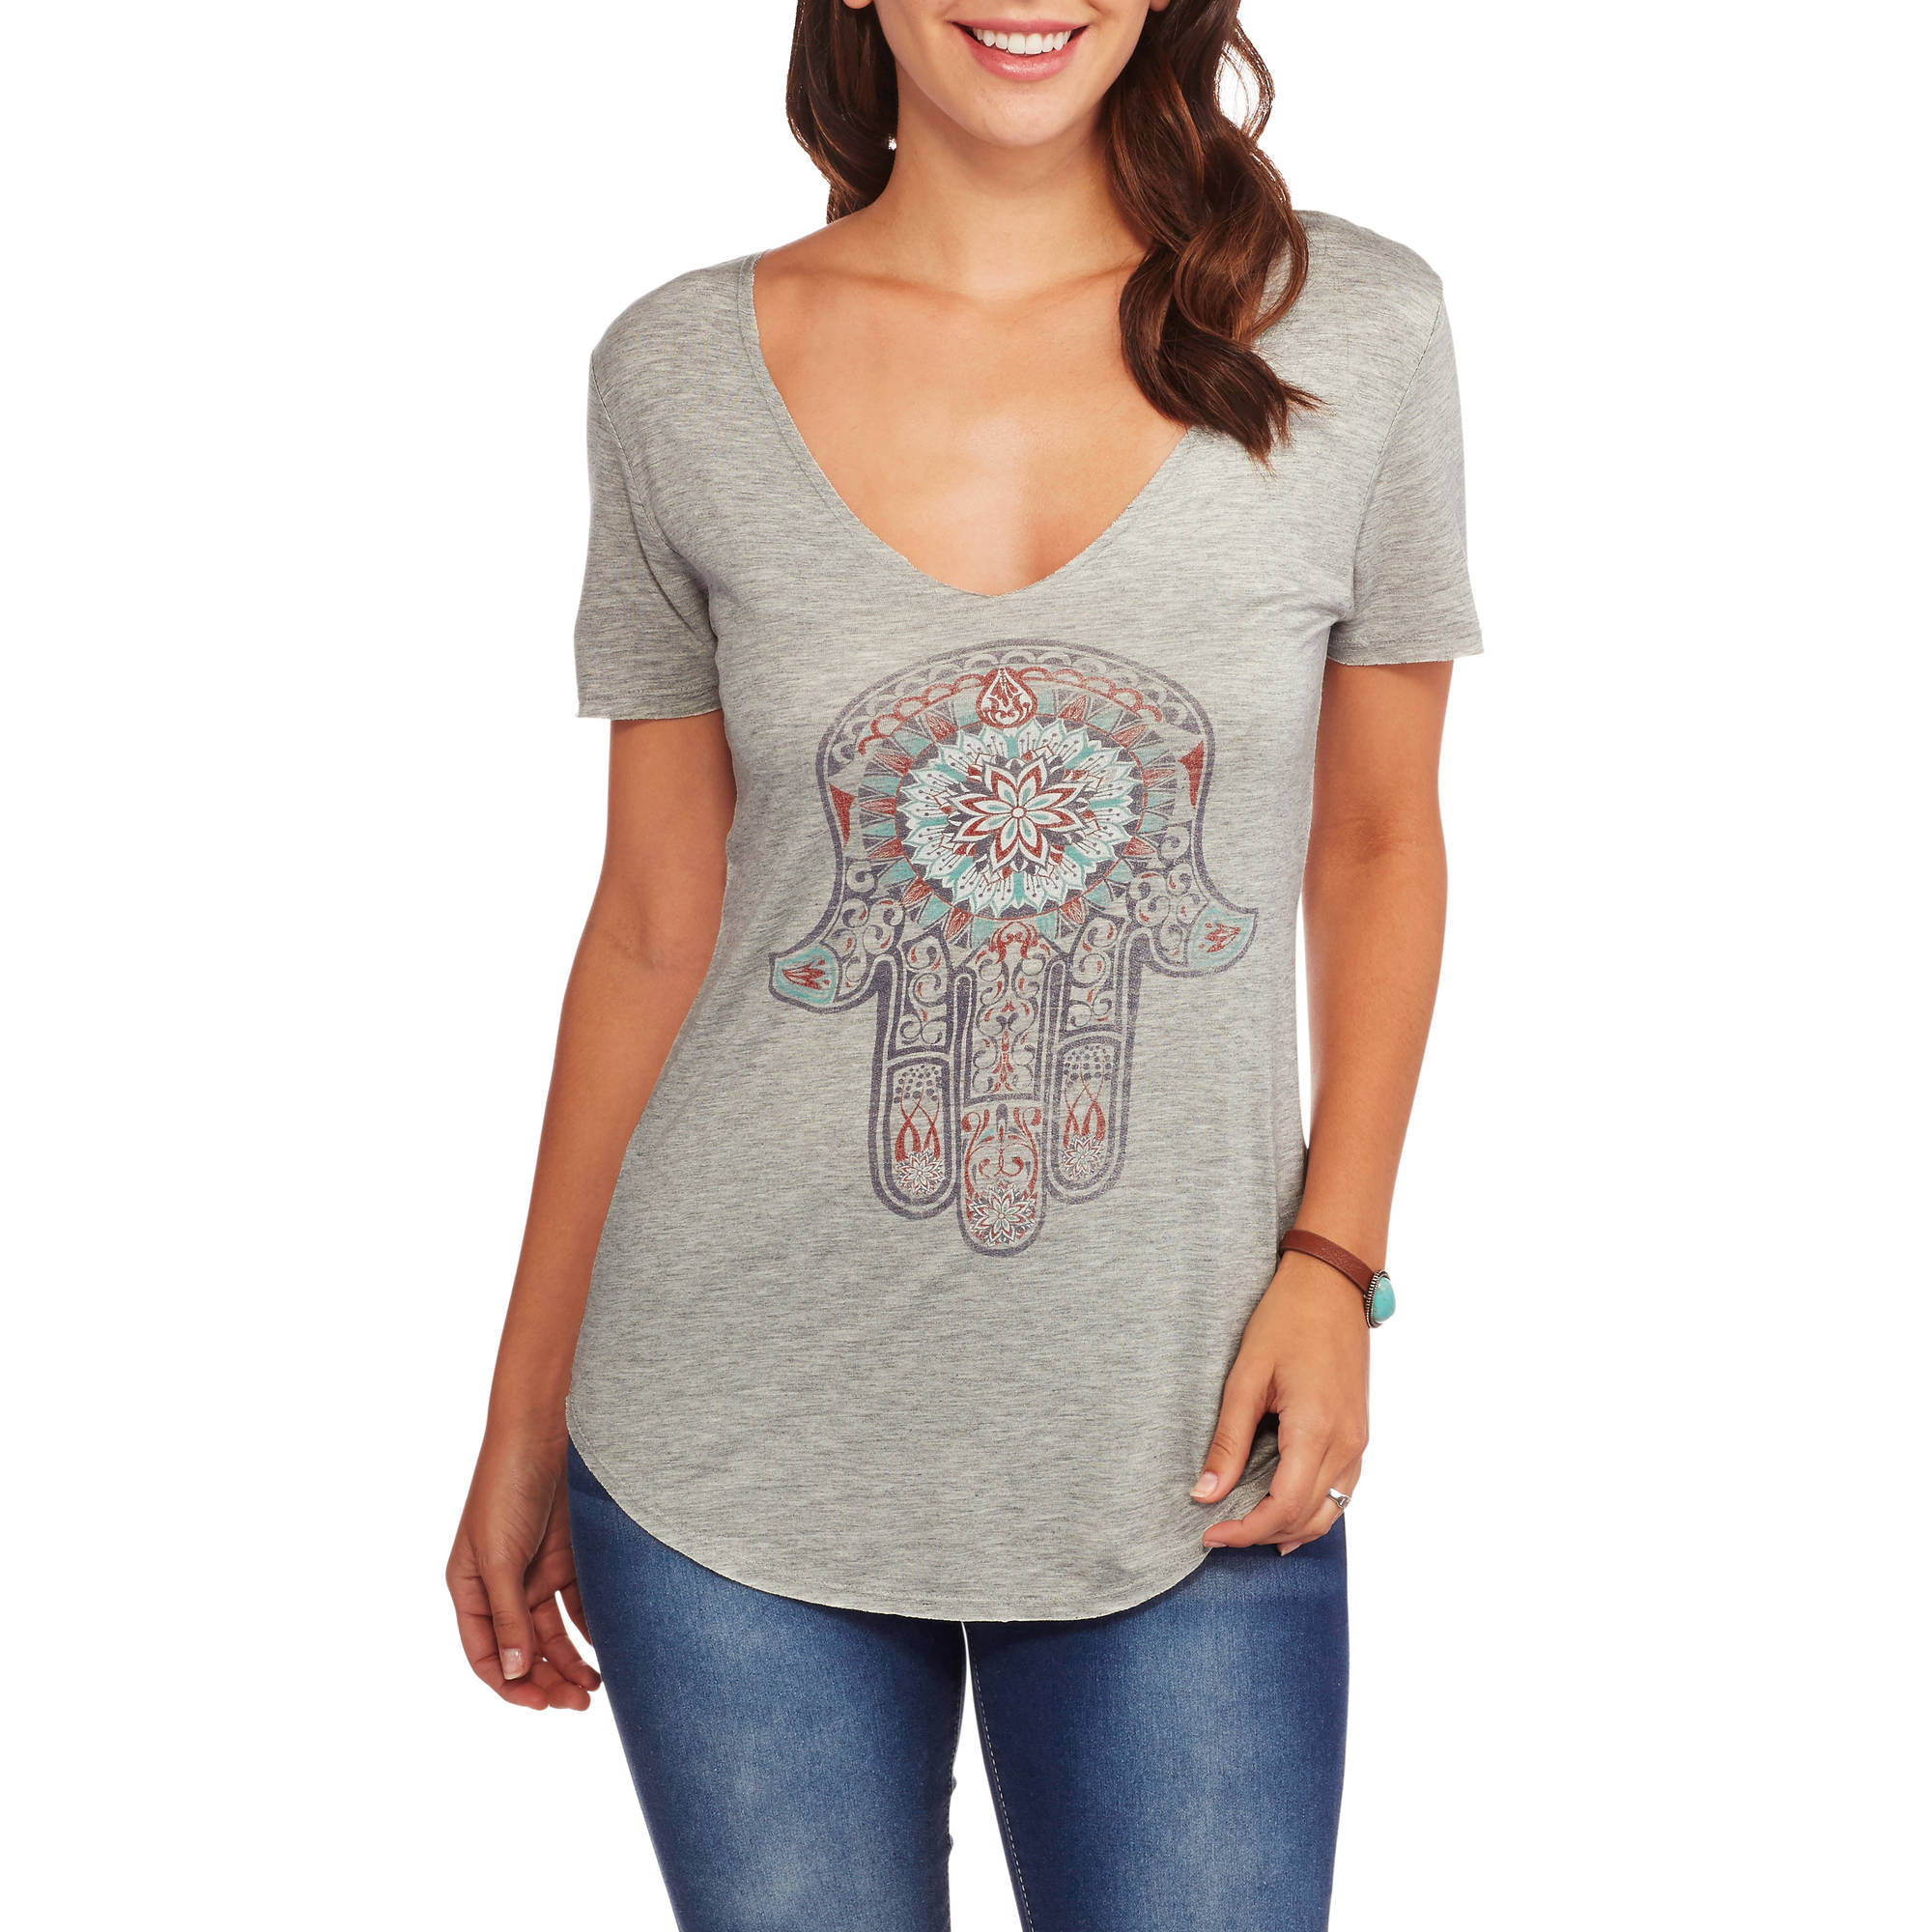 Project Karma Women's Relaxed Fit Vneck Graphic T-Shirt